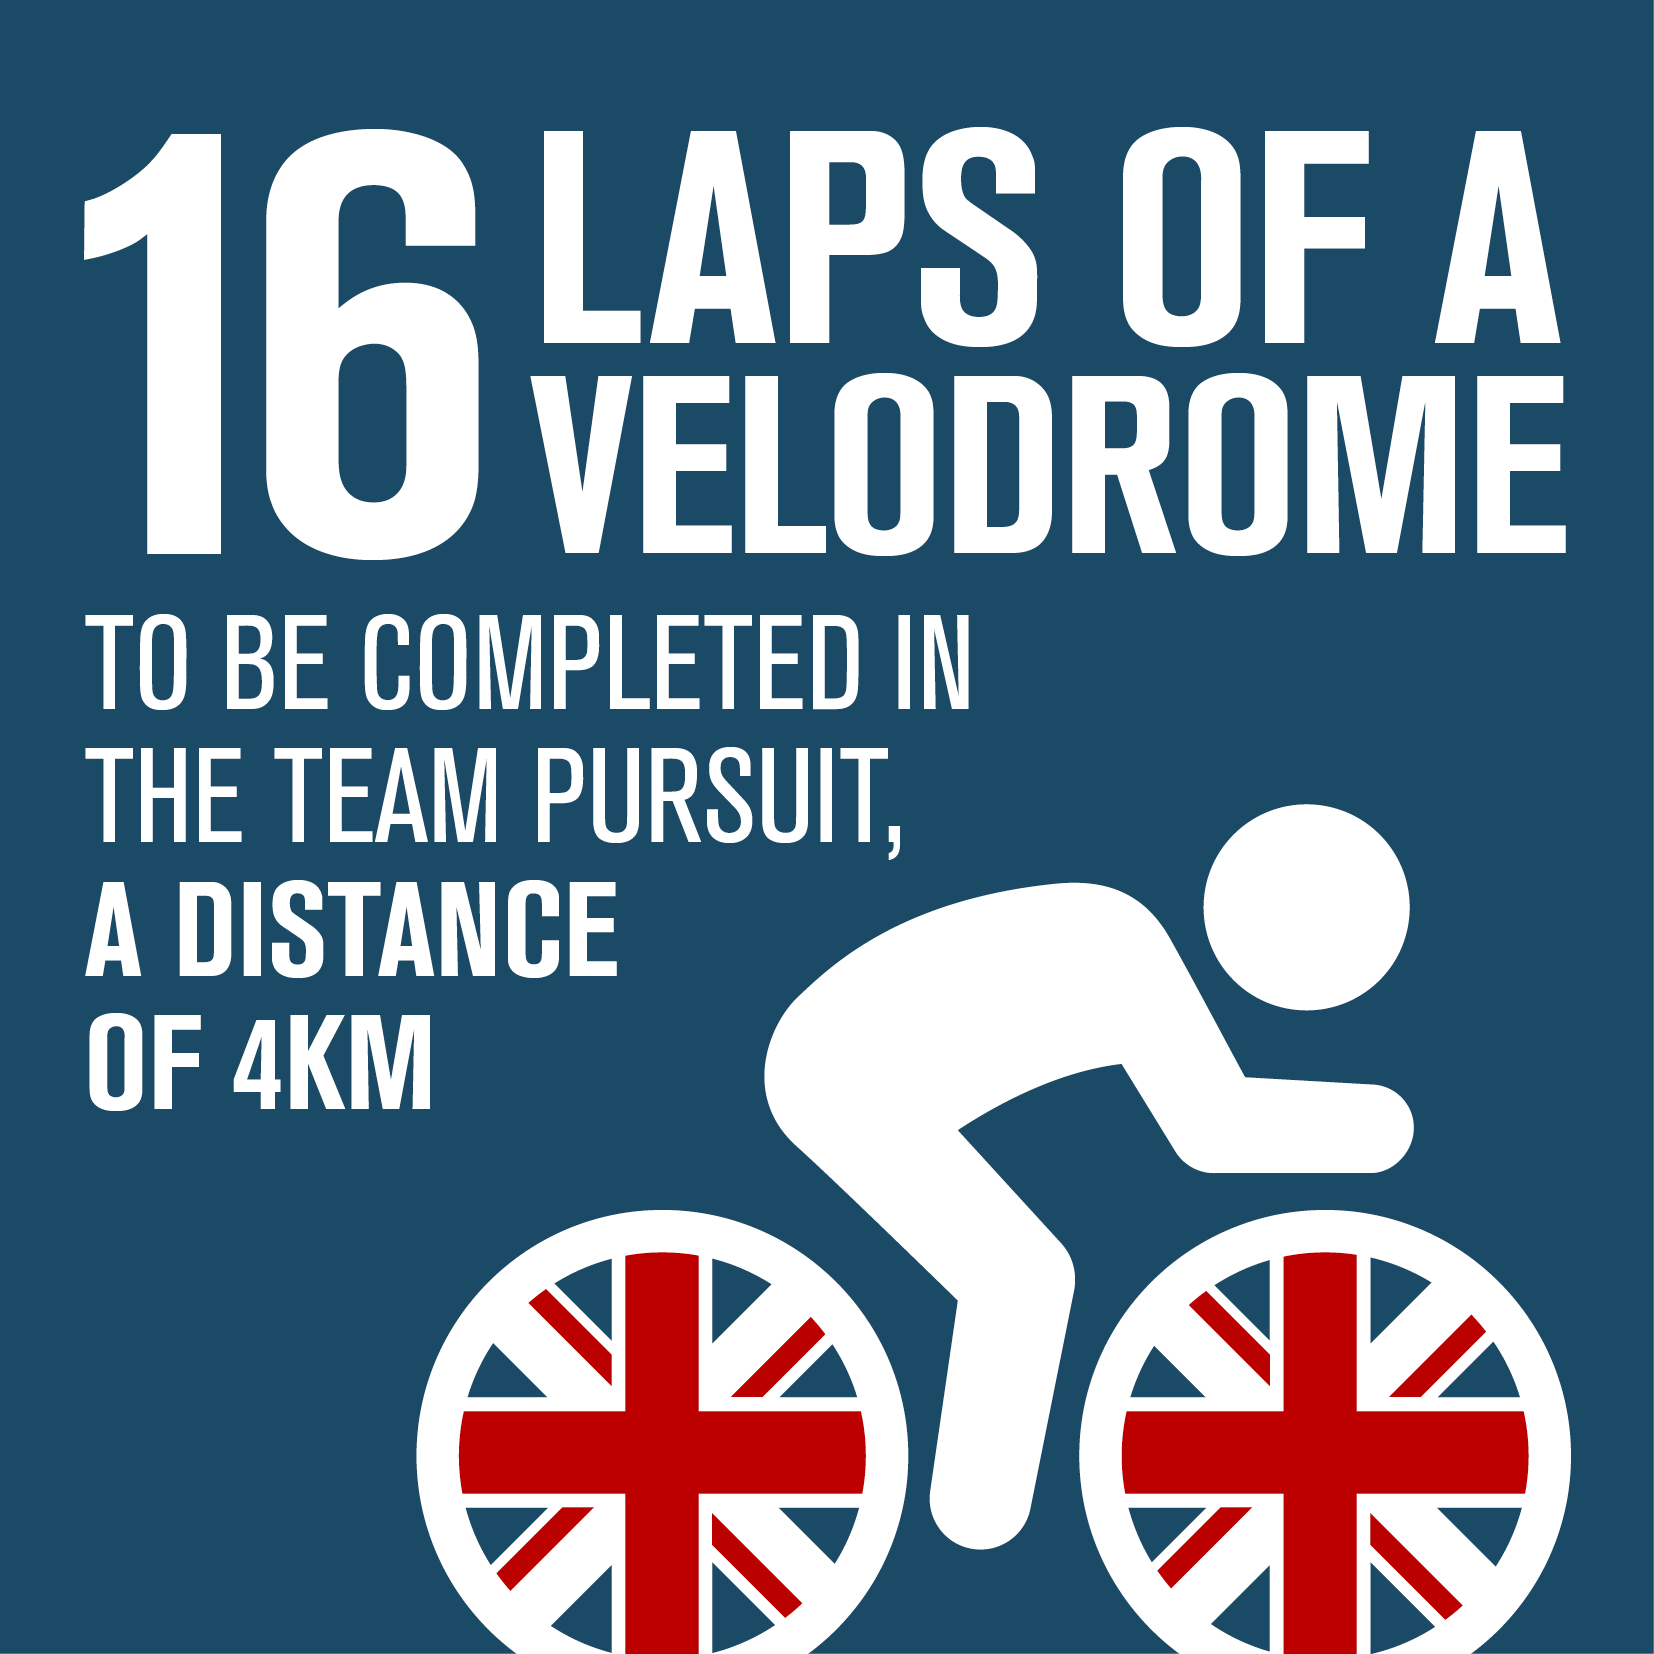 16 laps of a velodrome to be completed in the team persuit, a distance of 4km